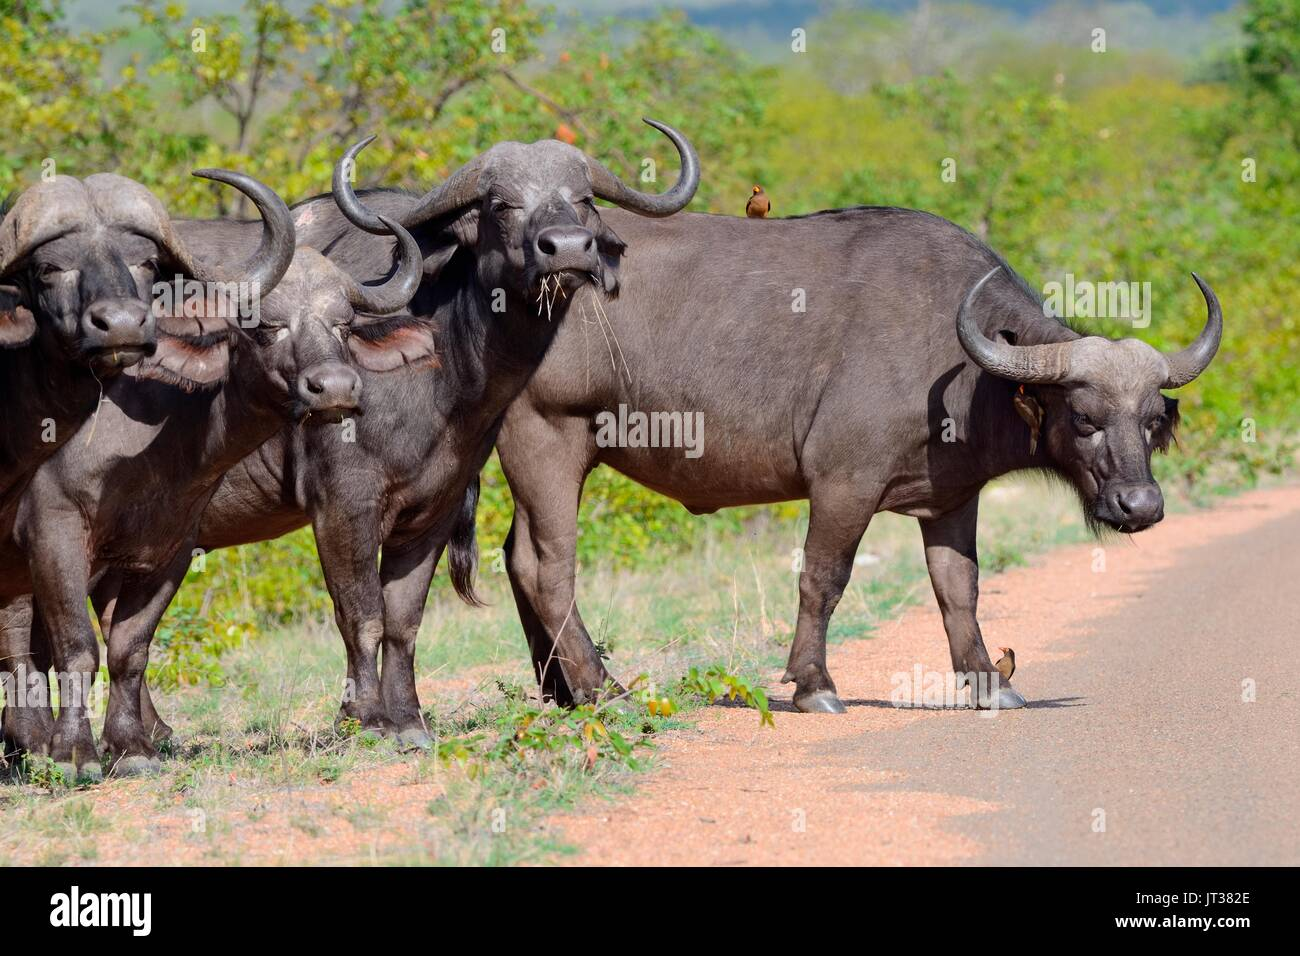 African buffaloes (Syncerus caffer) standing in row by the side of the paved road with Red-billed oxpeckers, Kruger Stock Photo